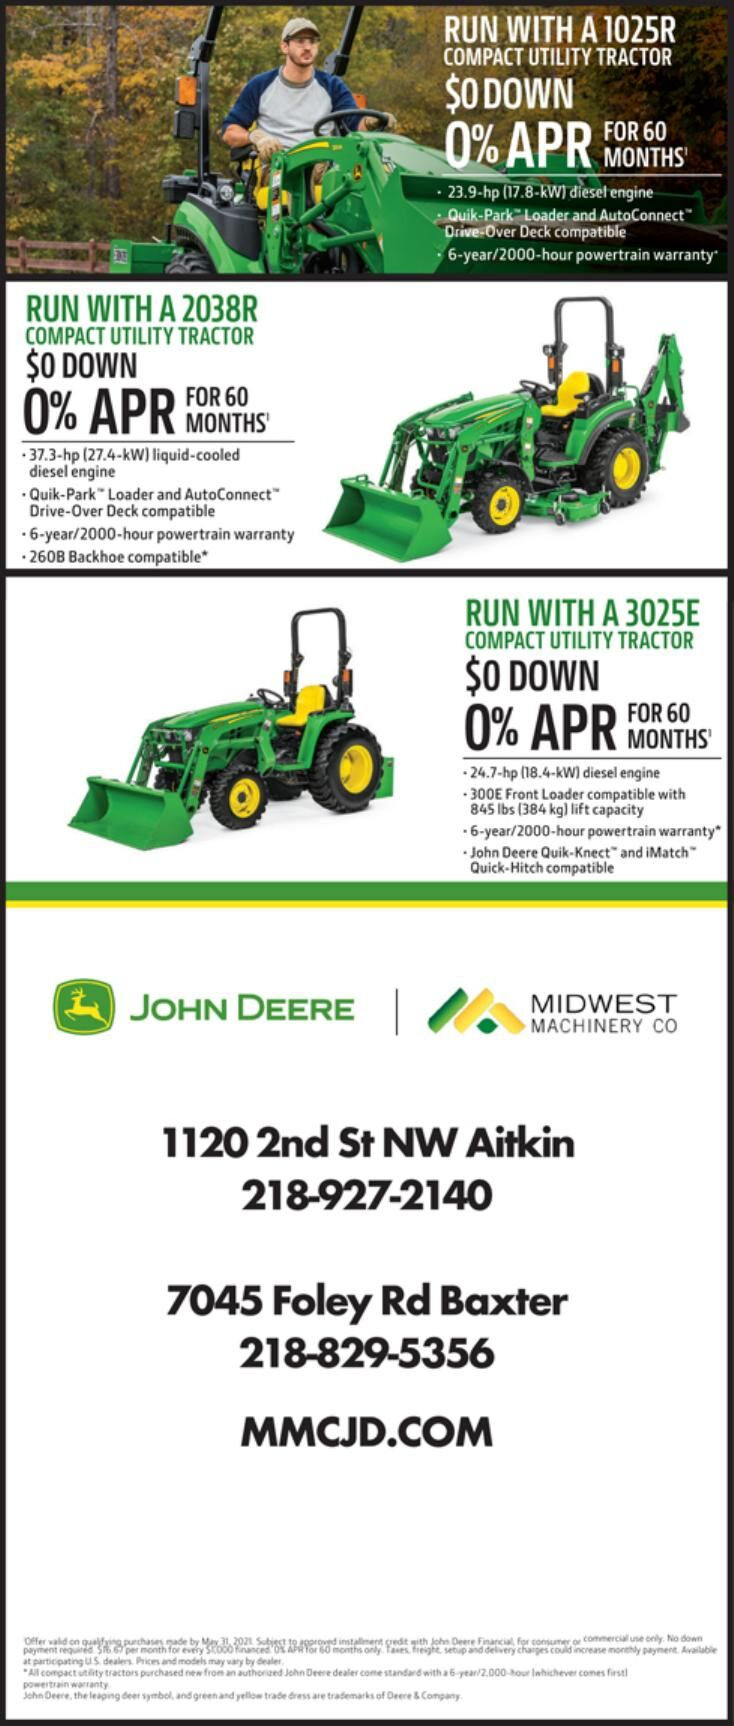 Midwest Machinery 5-1-21